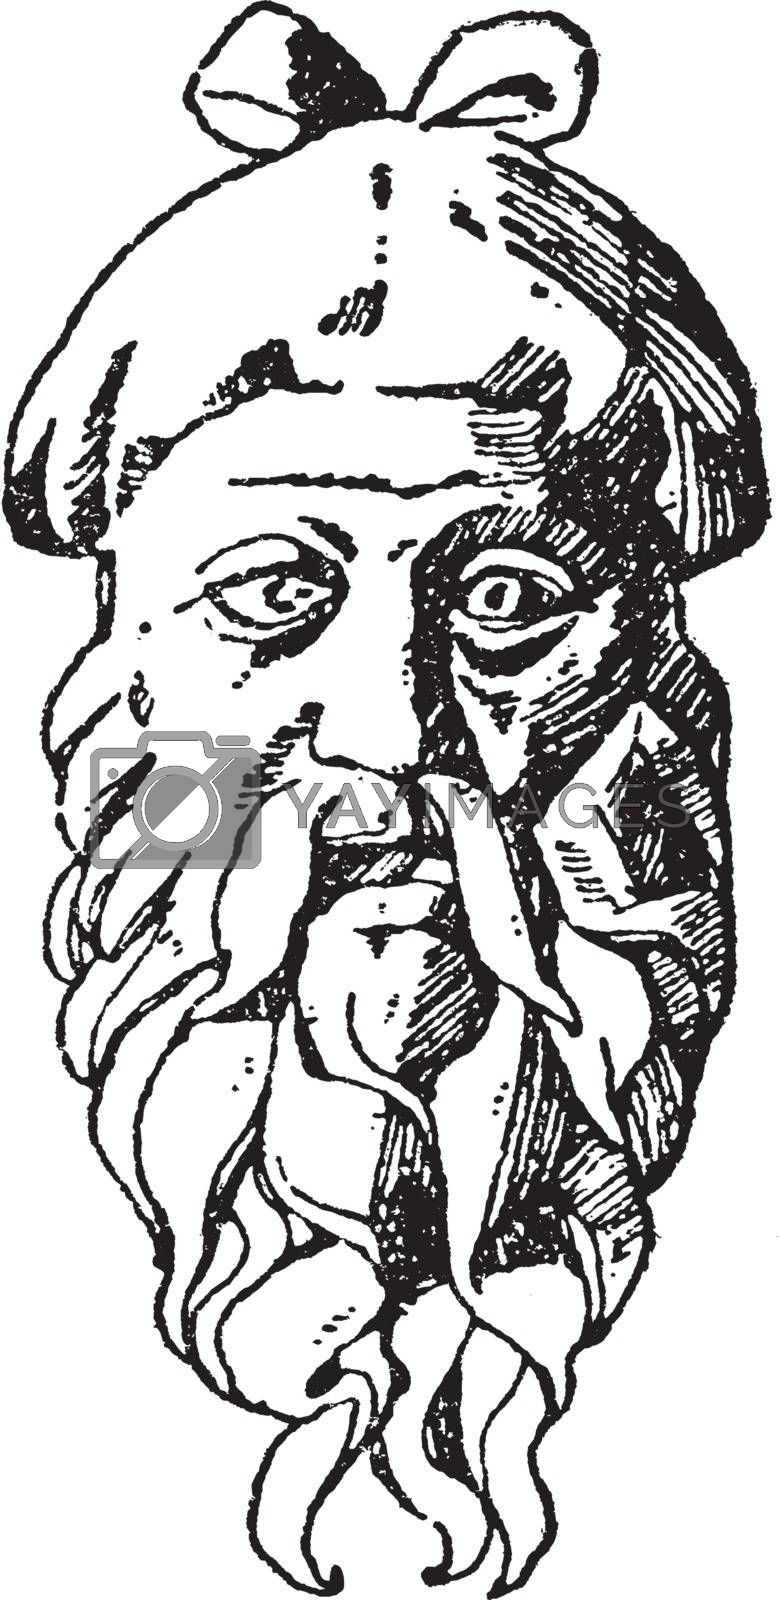 Mask Head is a Roman design, vintage engraving. by Morphart